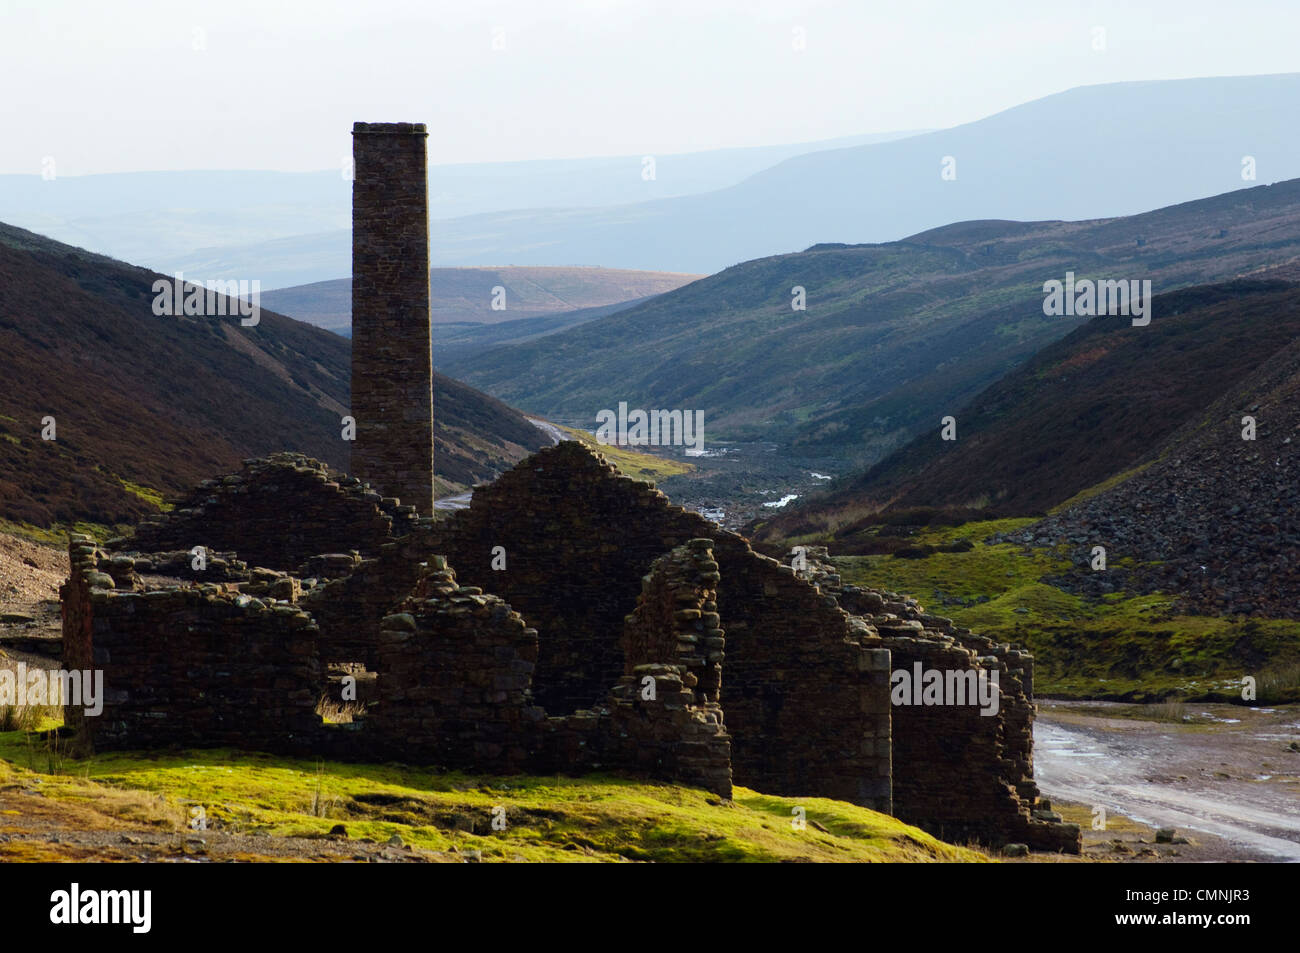 Remains of lead mines at Old Gang above Swaledale, North Yorkshire - Stock Image